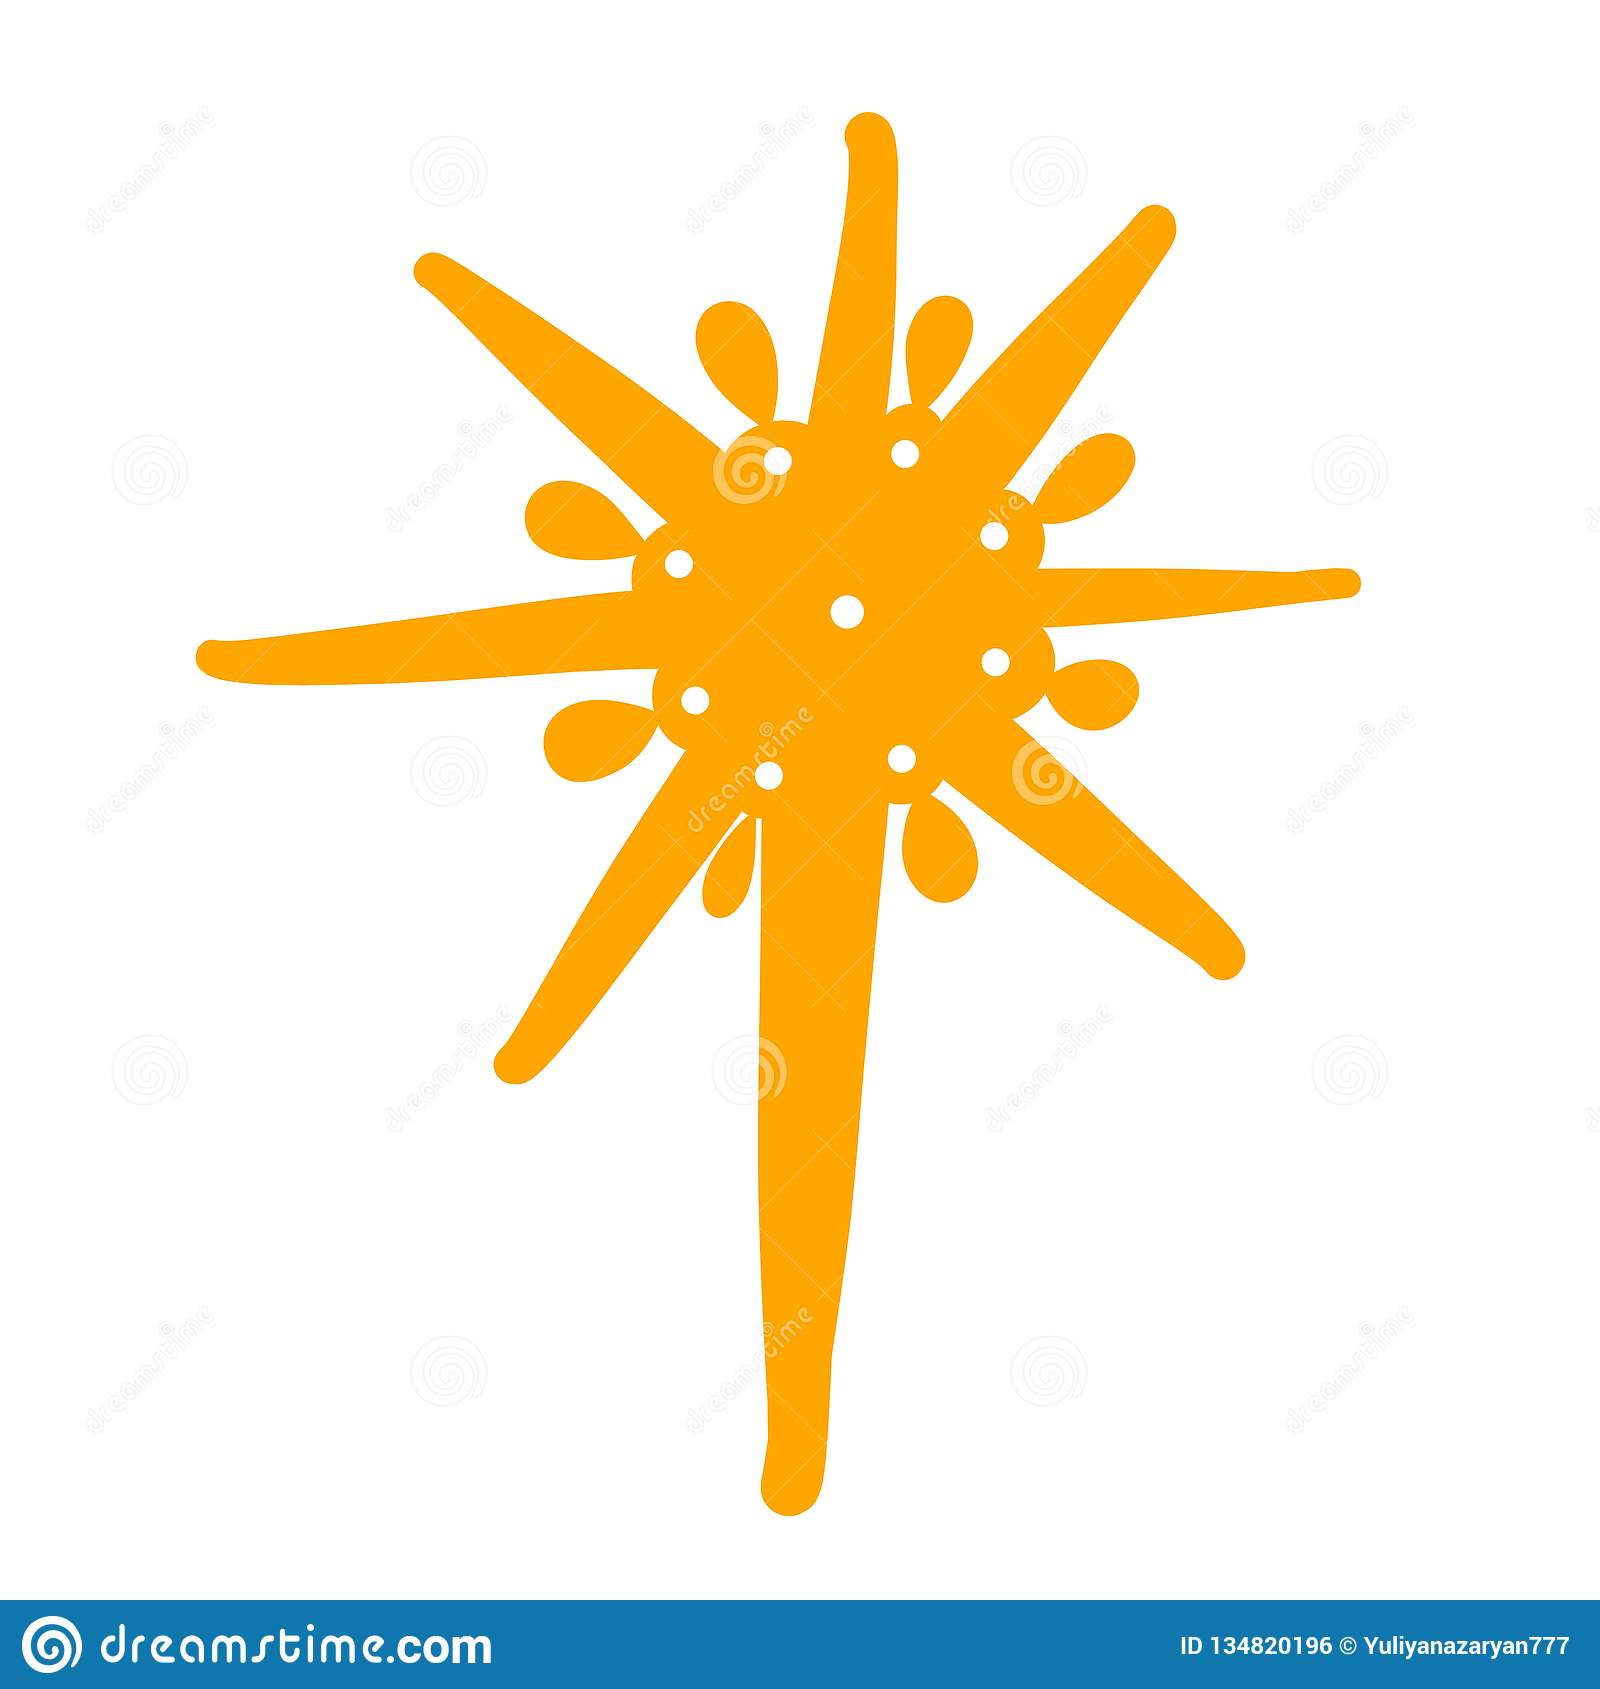 Christmas Star Silhouette.Shining Christmas Star Yellow Silhouette Tidings Of The